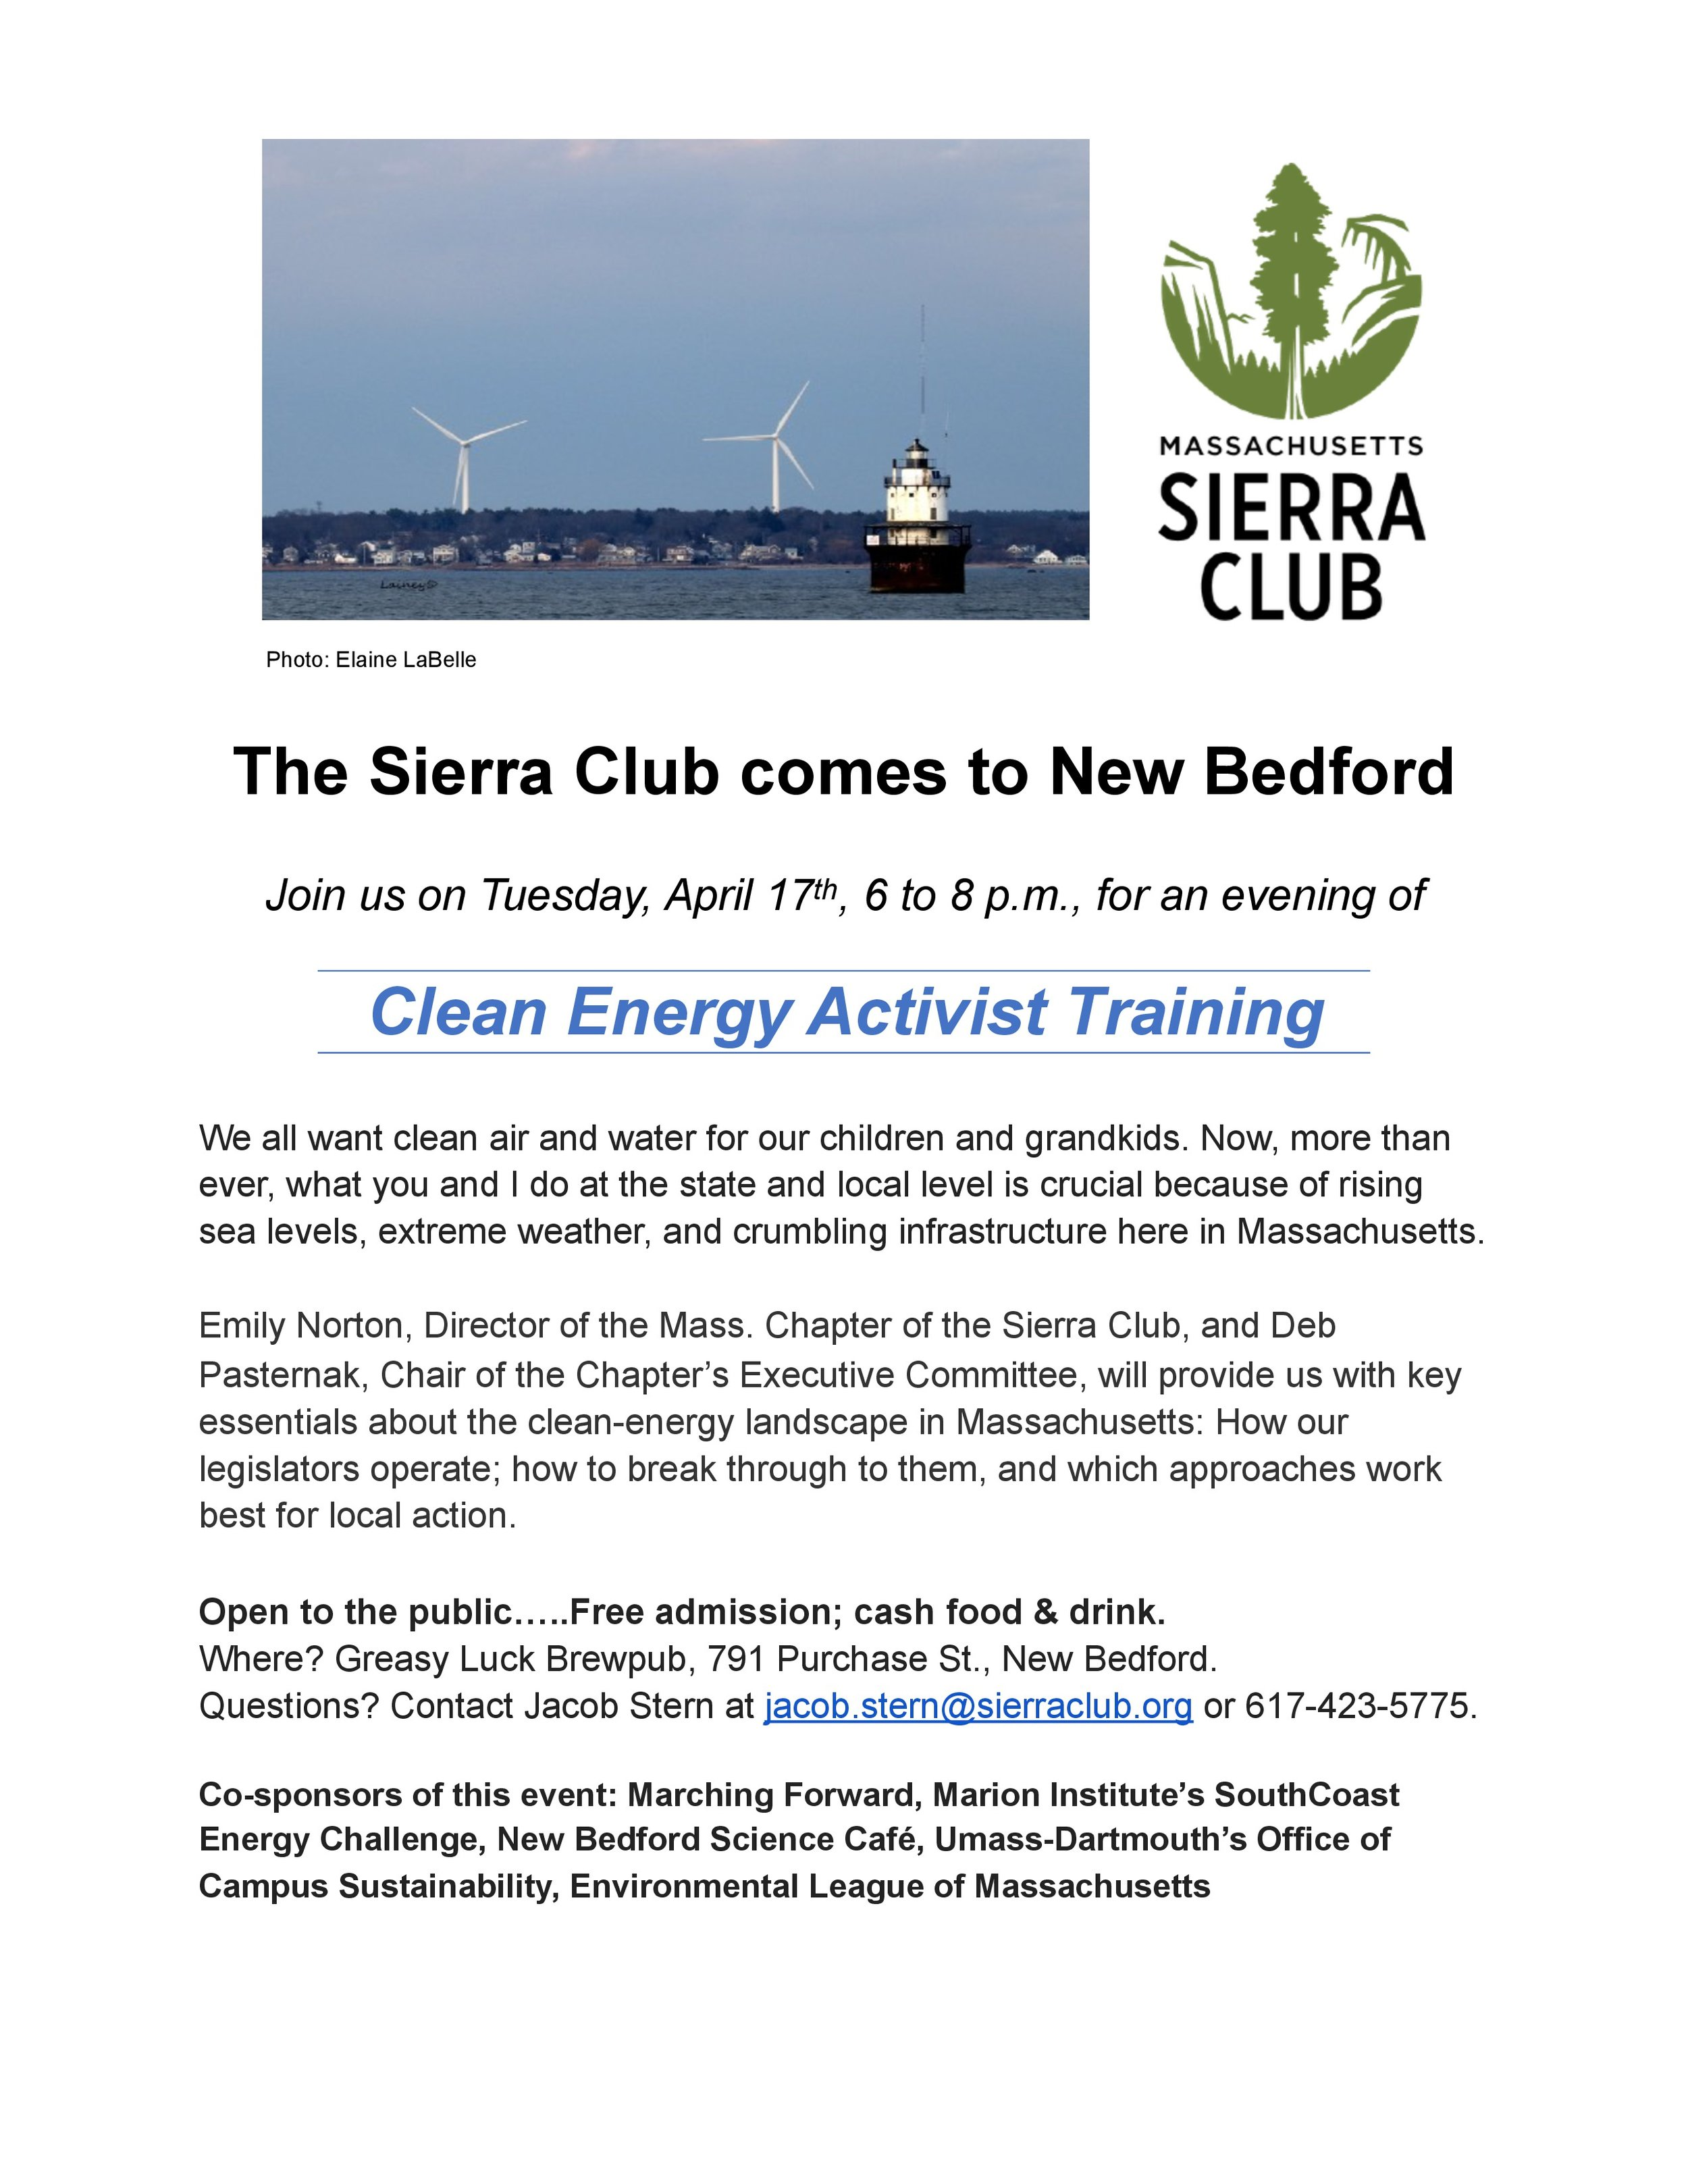 Sierra Club Event.jpg